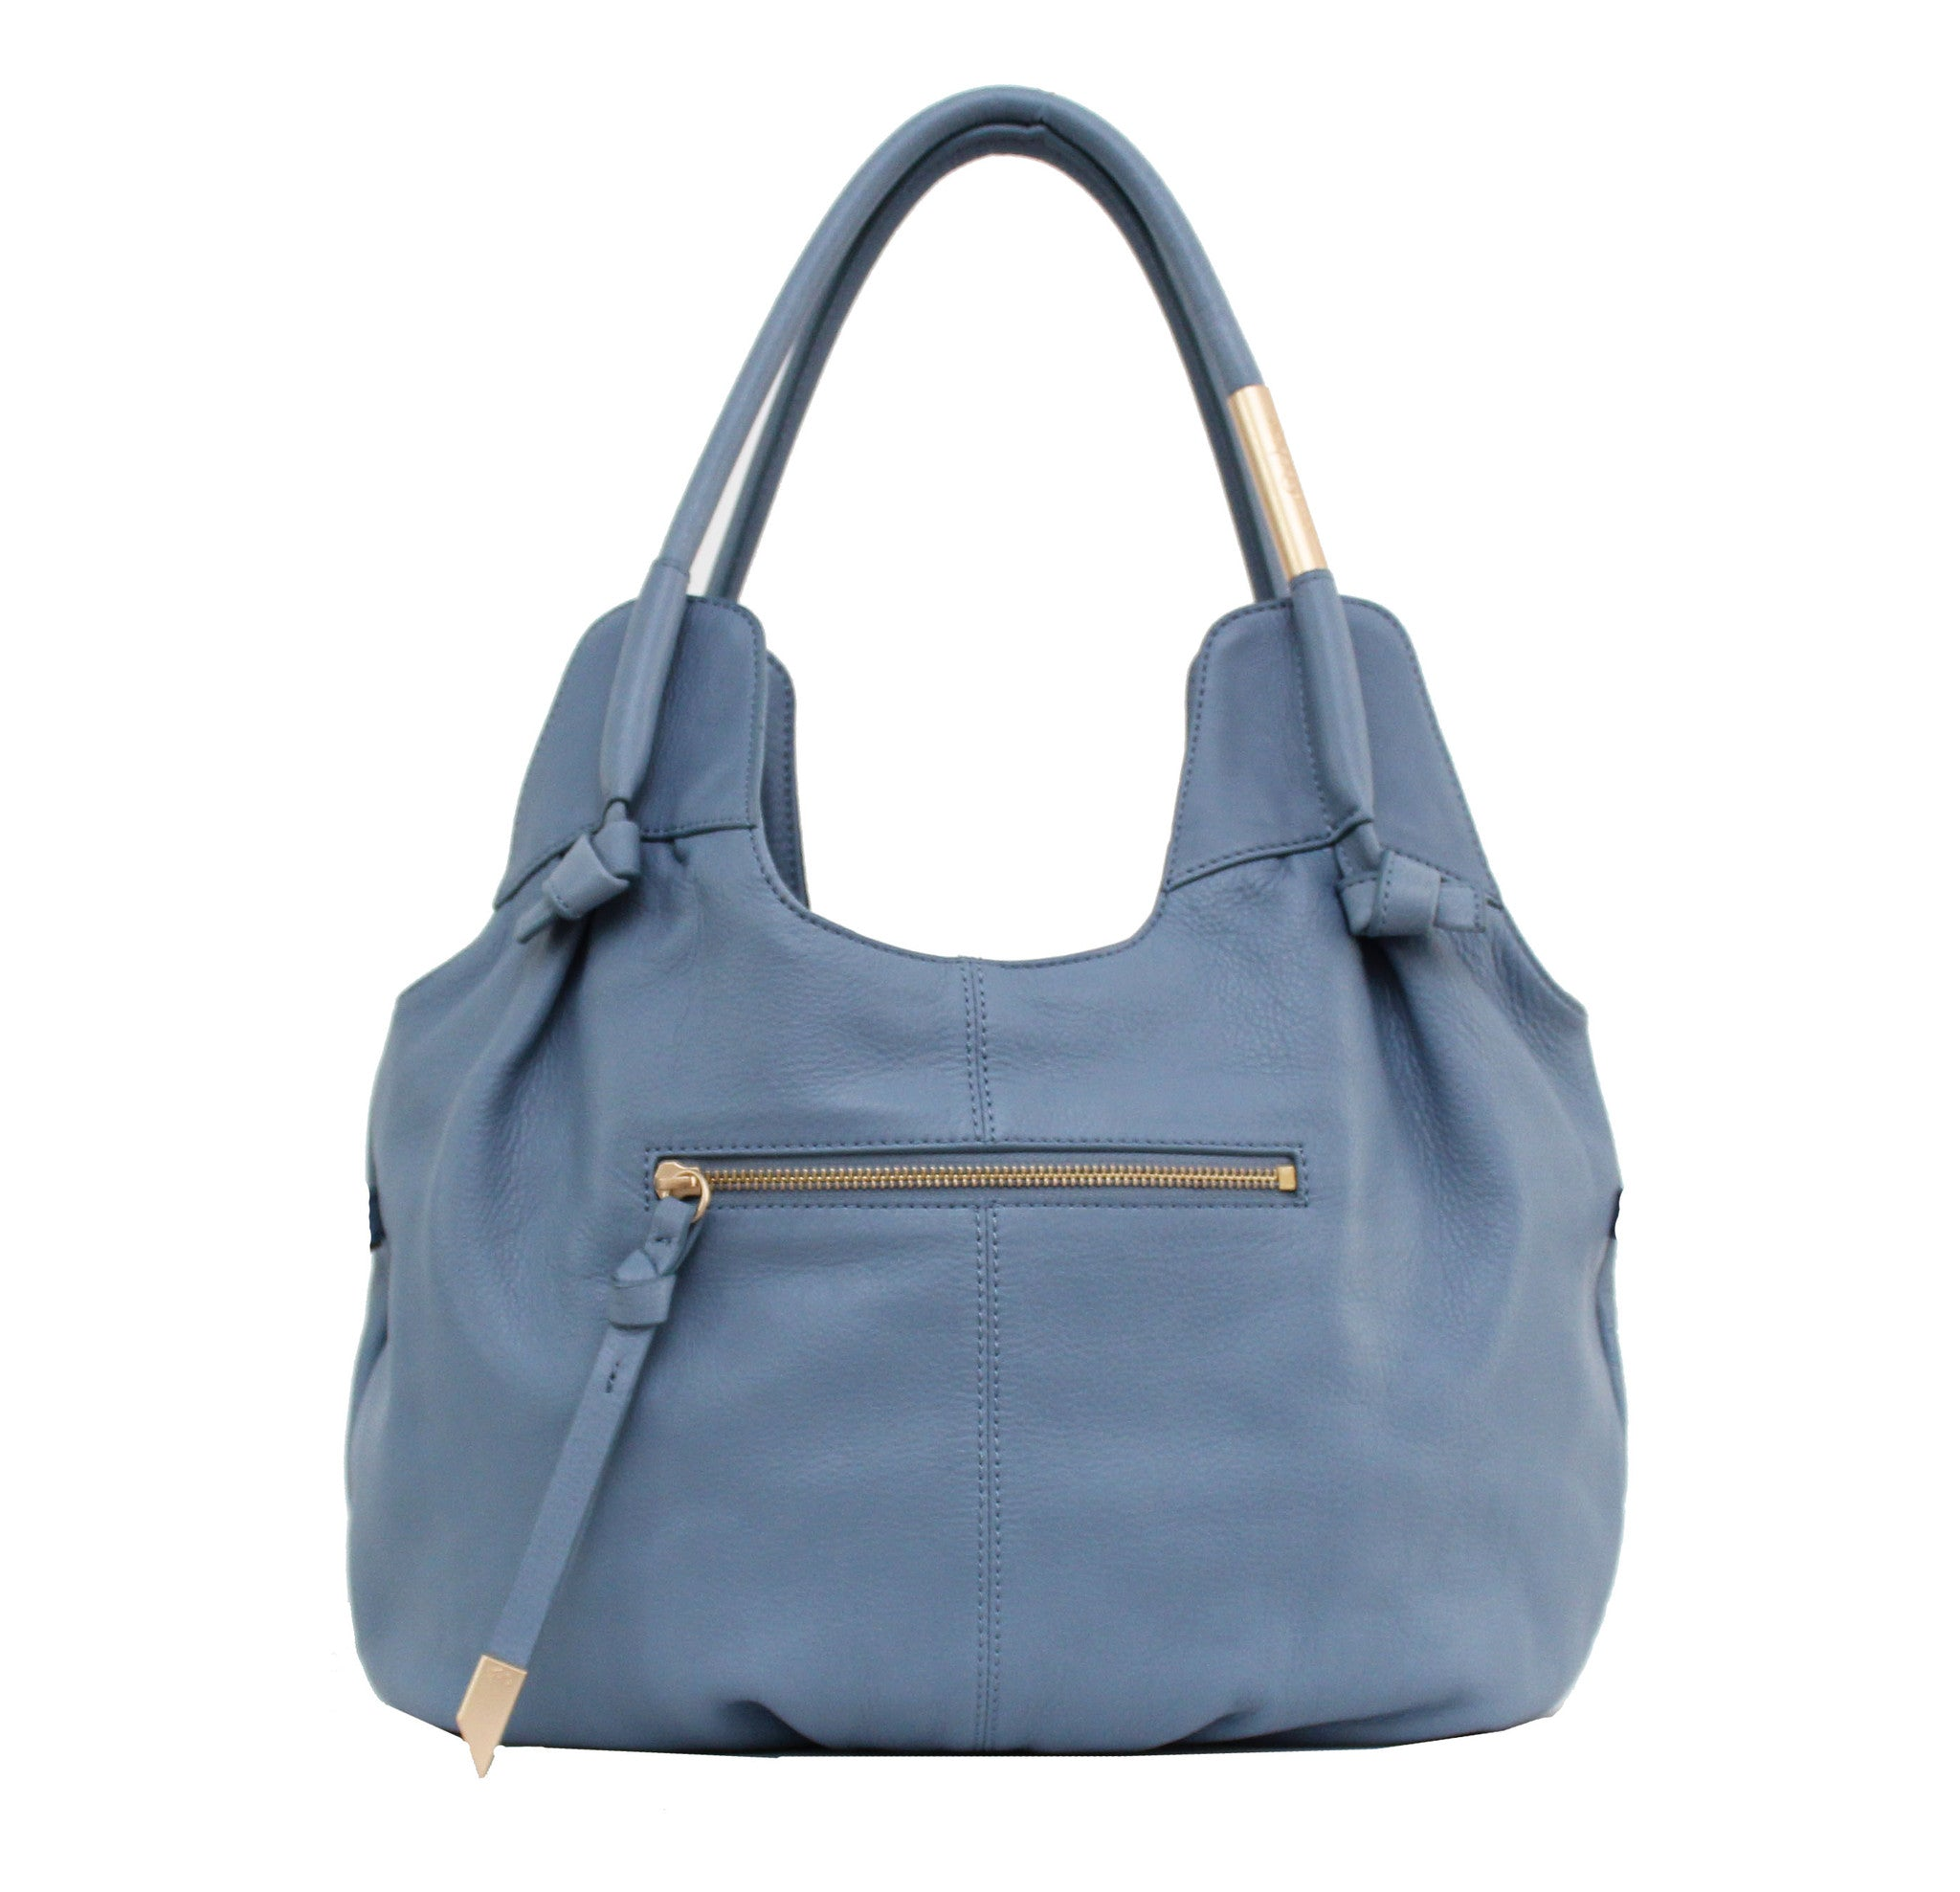 MADDIE DOUBLE HANDLE HOBO IN AZUL